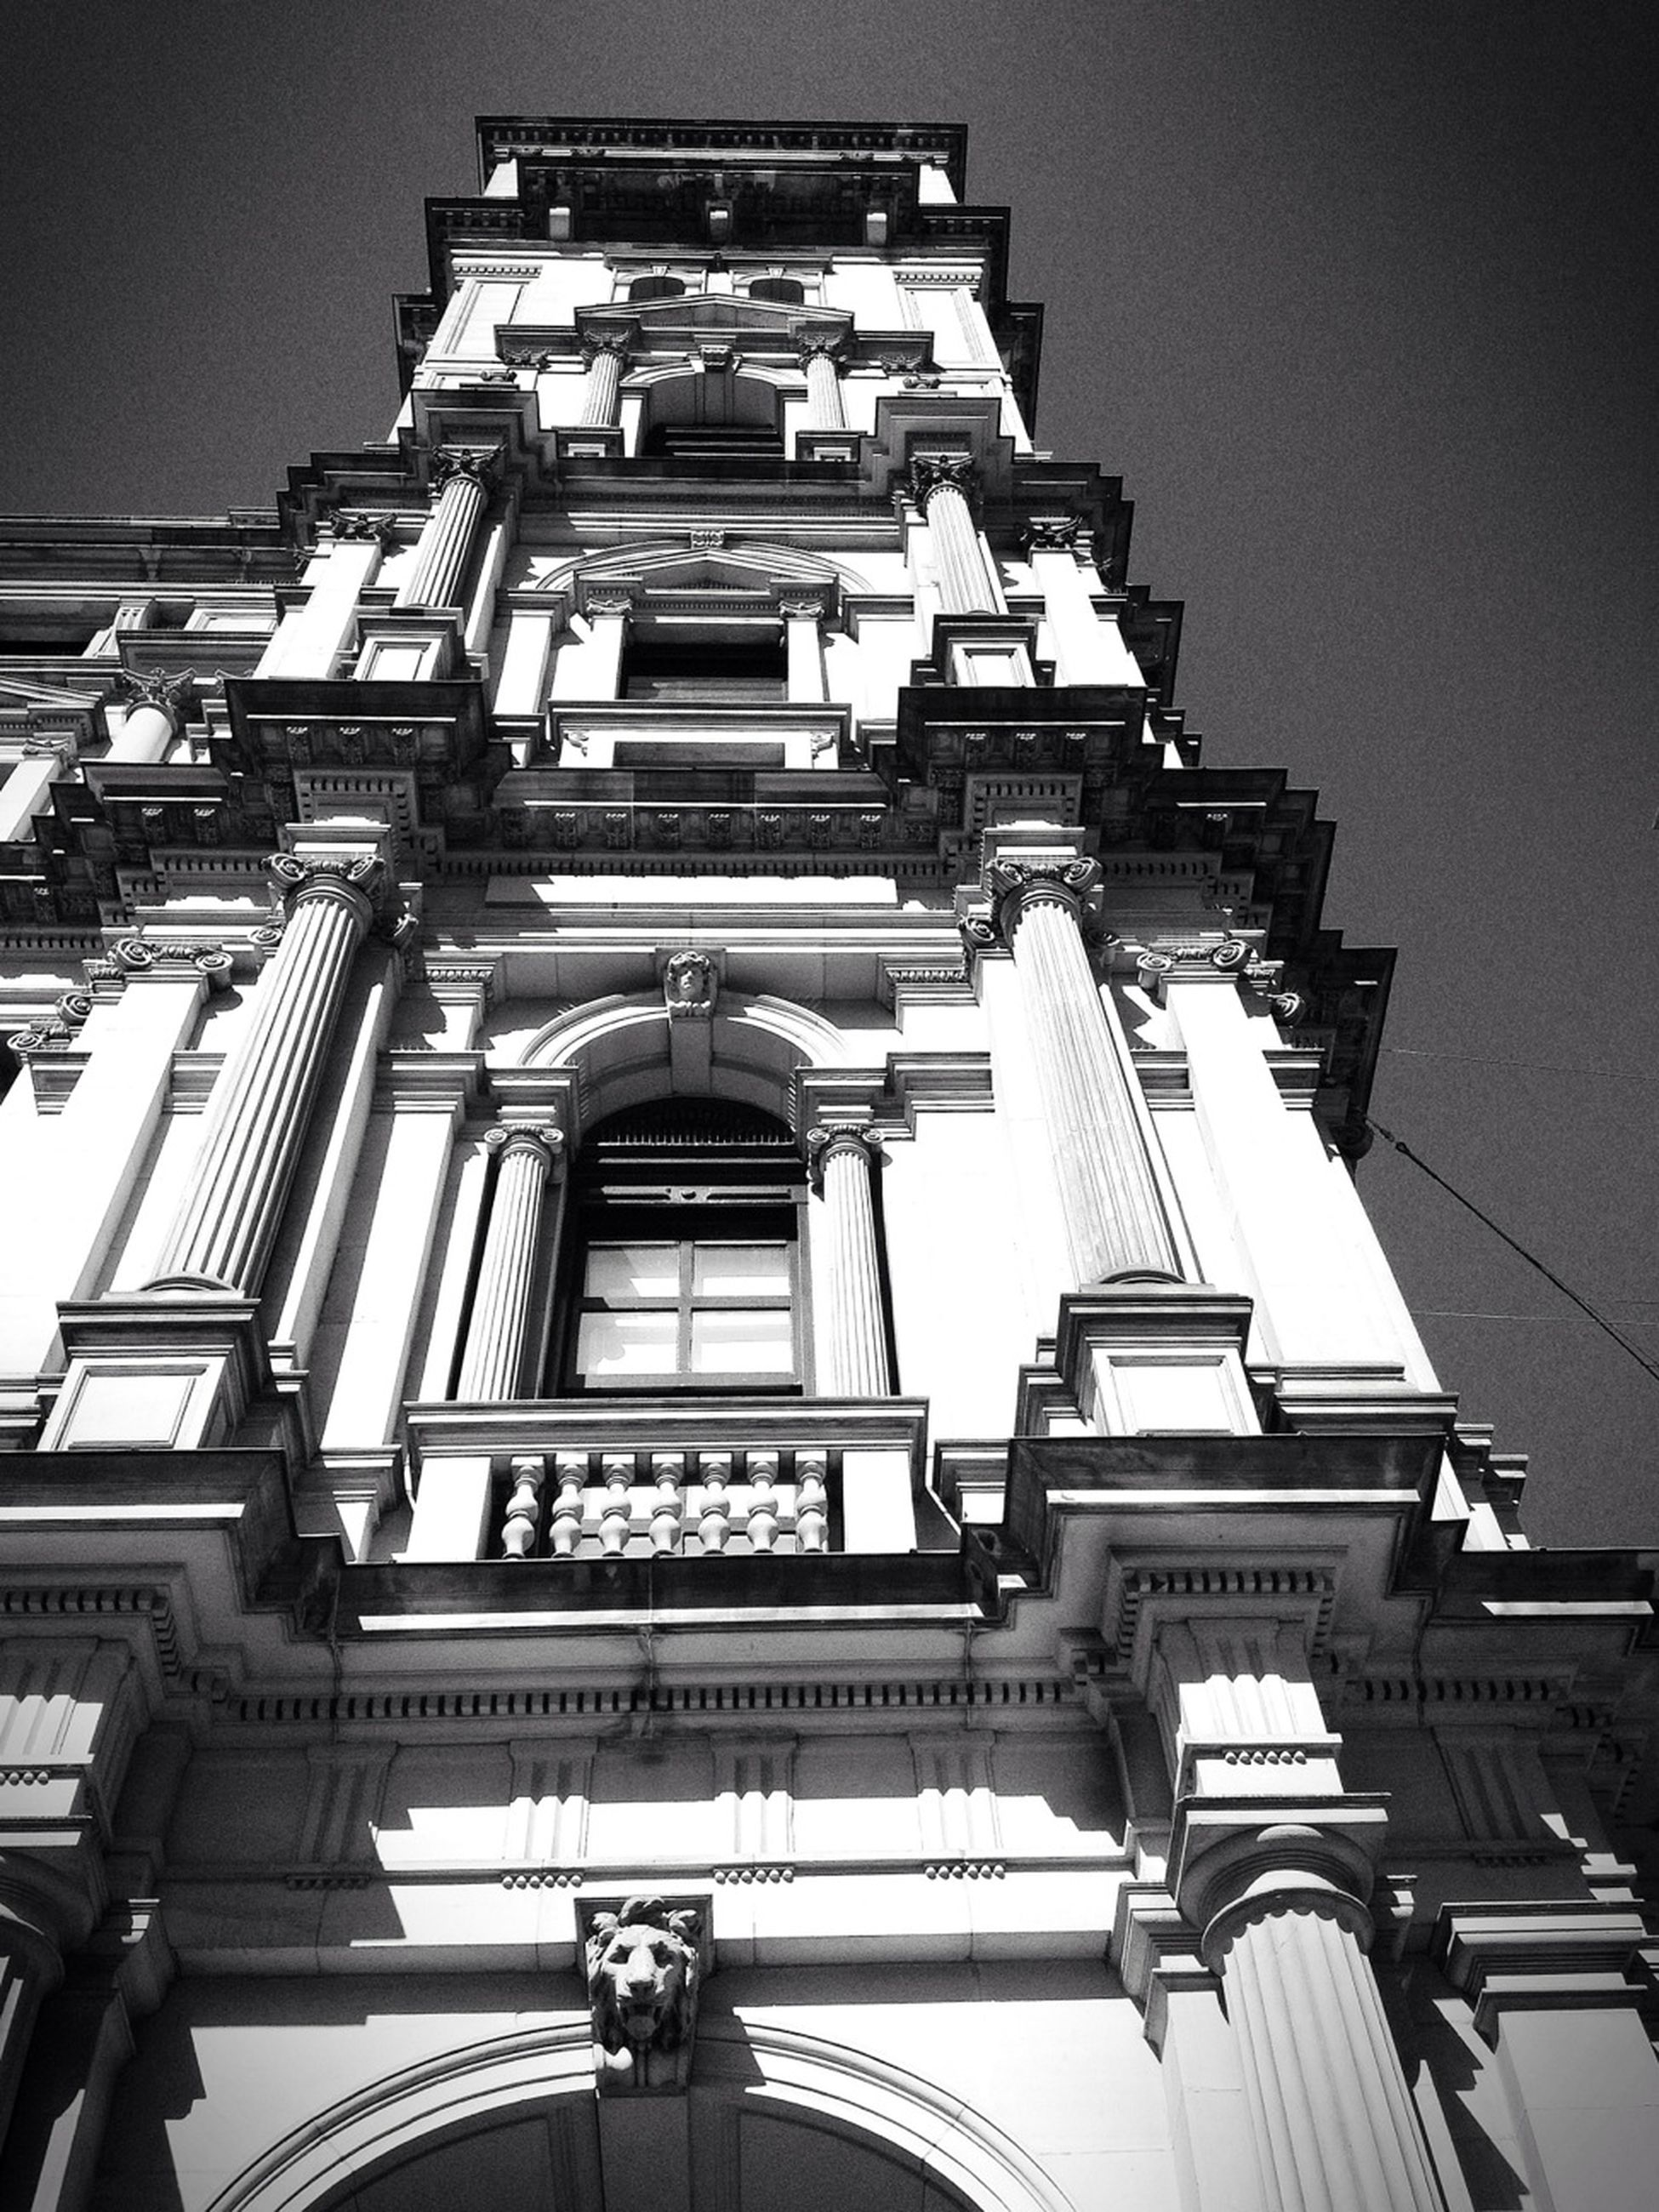 architecture, low angle view, built structure, building exterior, window, building, clear sky, architectural feature, city, facade, place of worship, sky, history, travel destinations, ornate, famous place, day, no people, outdoors, religion